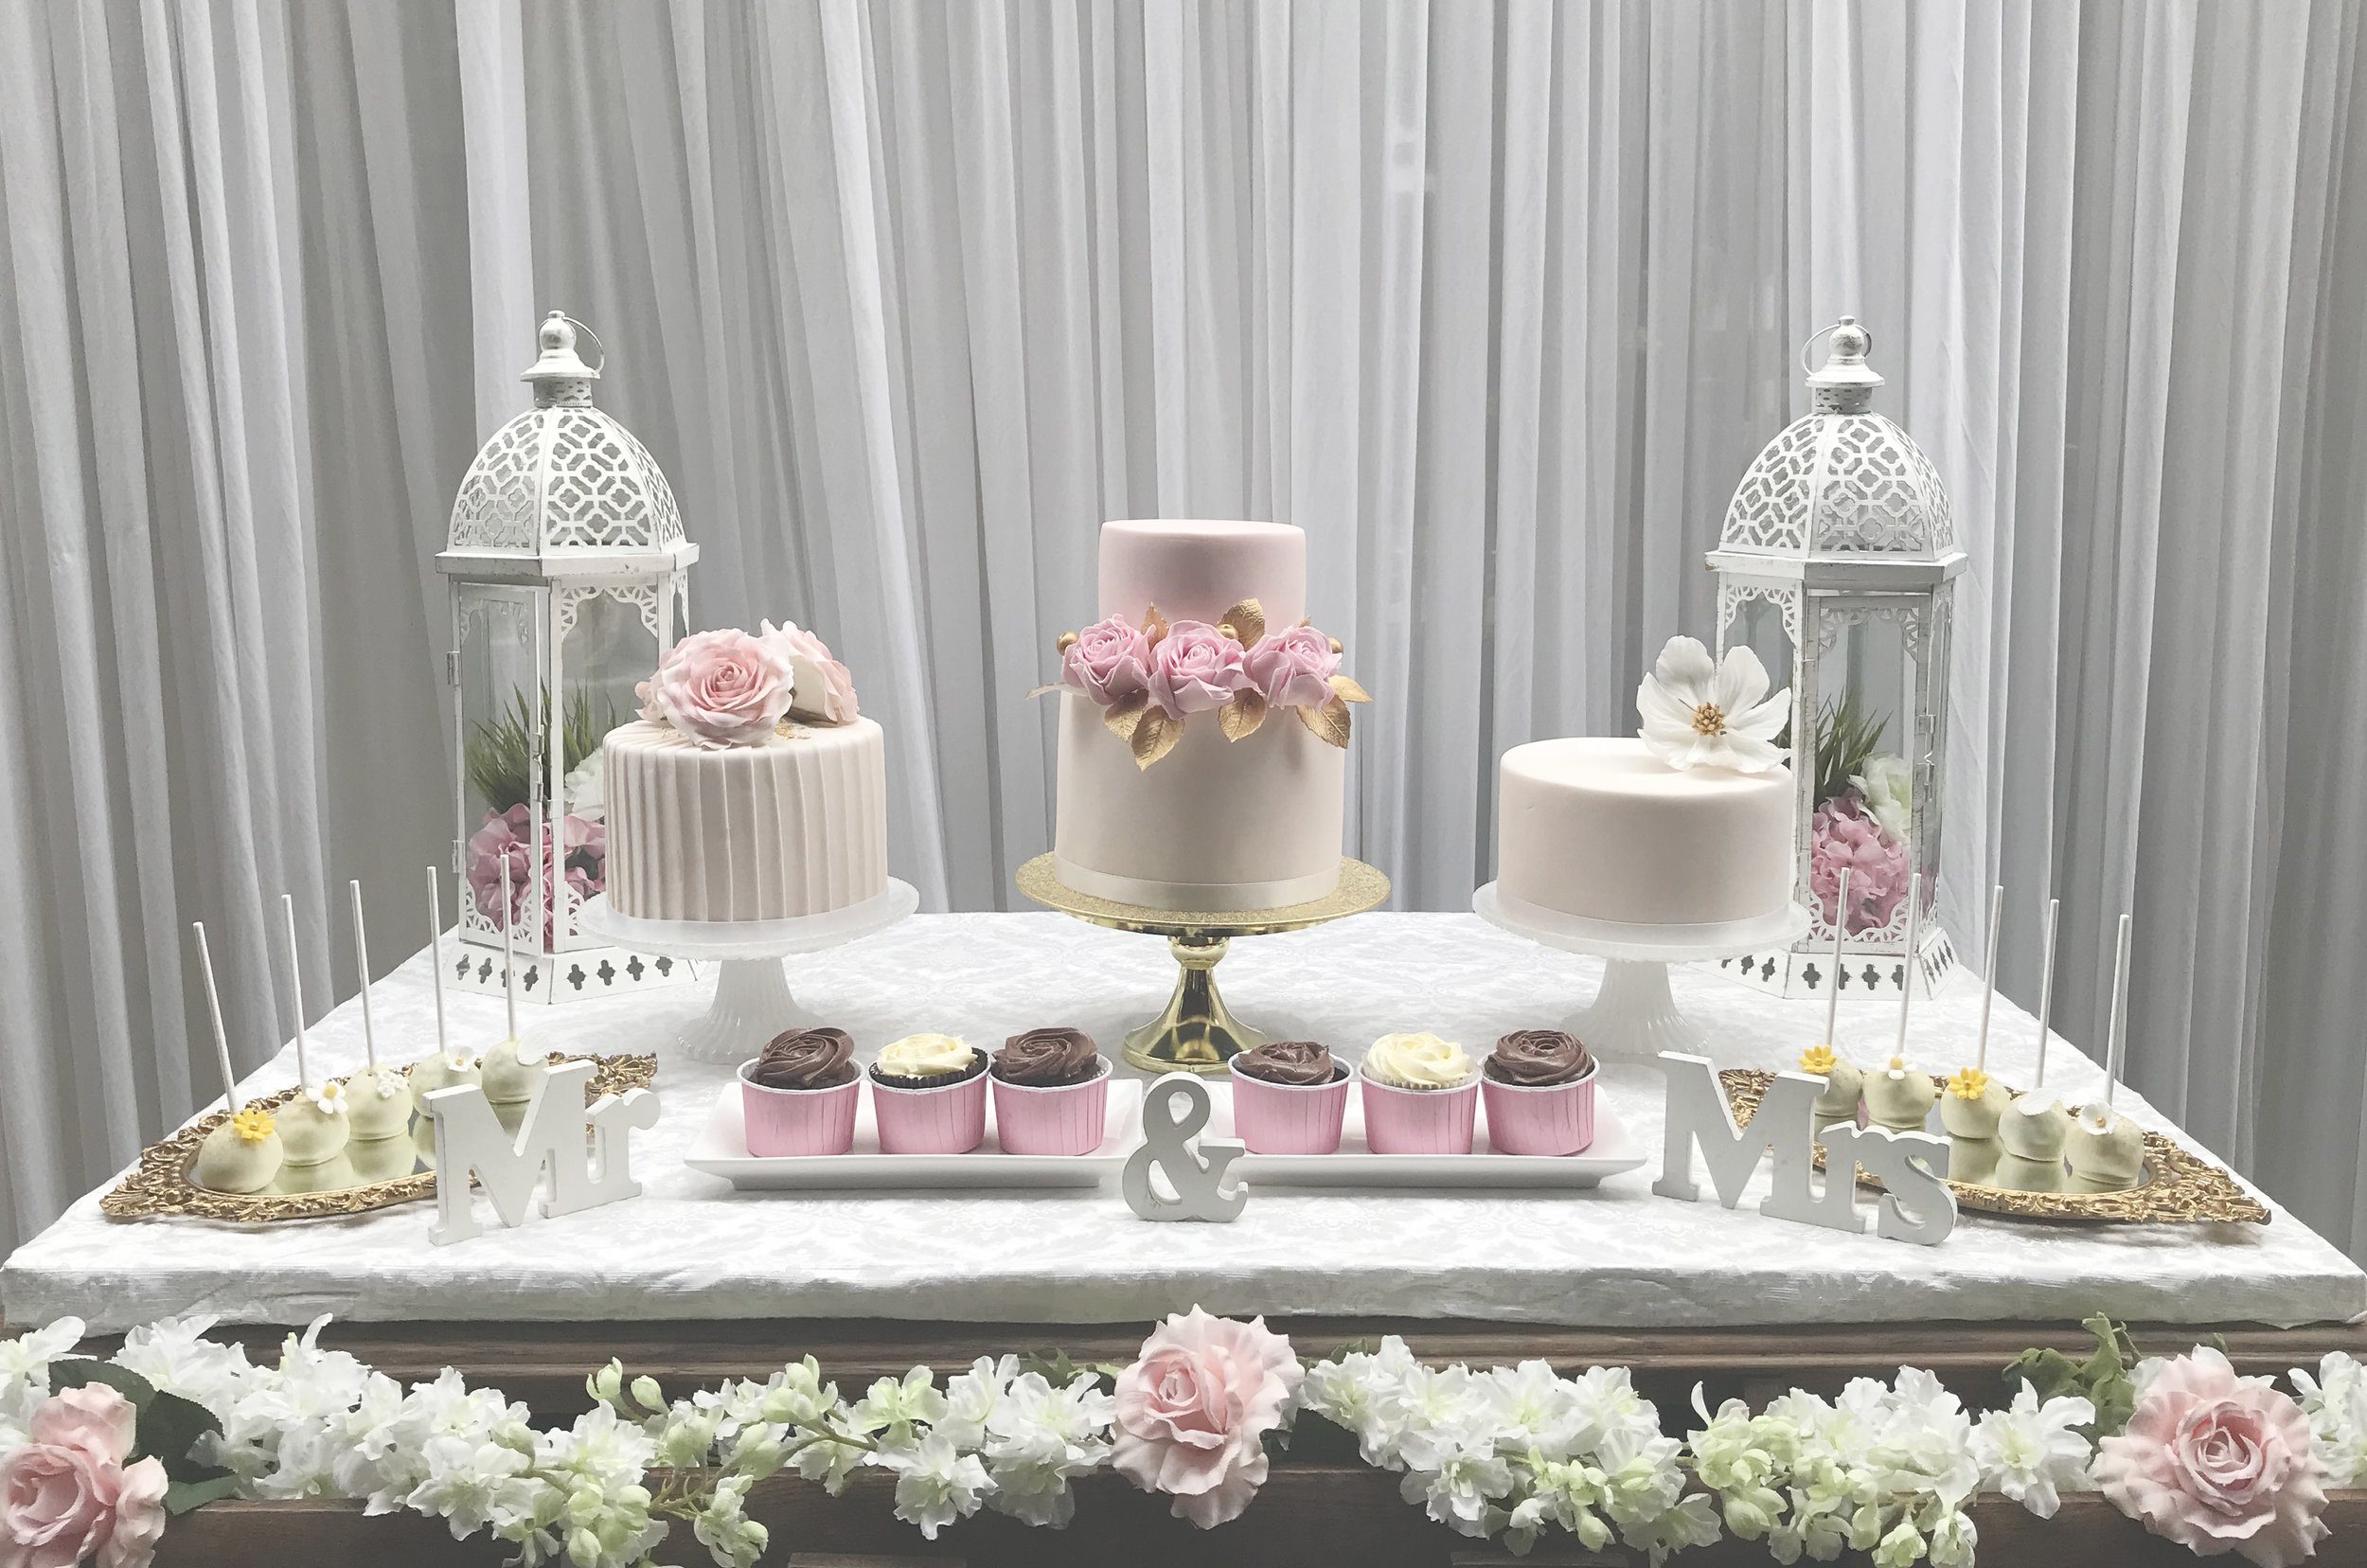 Three of our vintage collection cakes, vintage cake pops and pink cupcakes were set on the table by Eliane Teodoro at Shekinah events London and hosted by The Alexandra pub in South London.